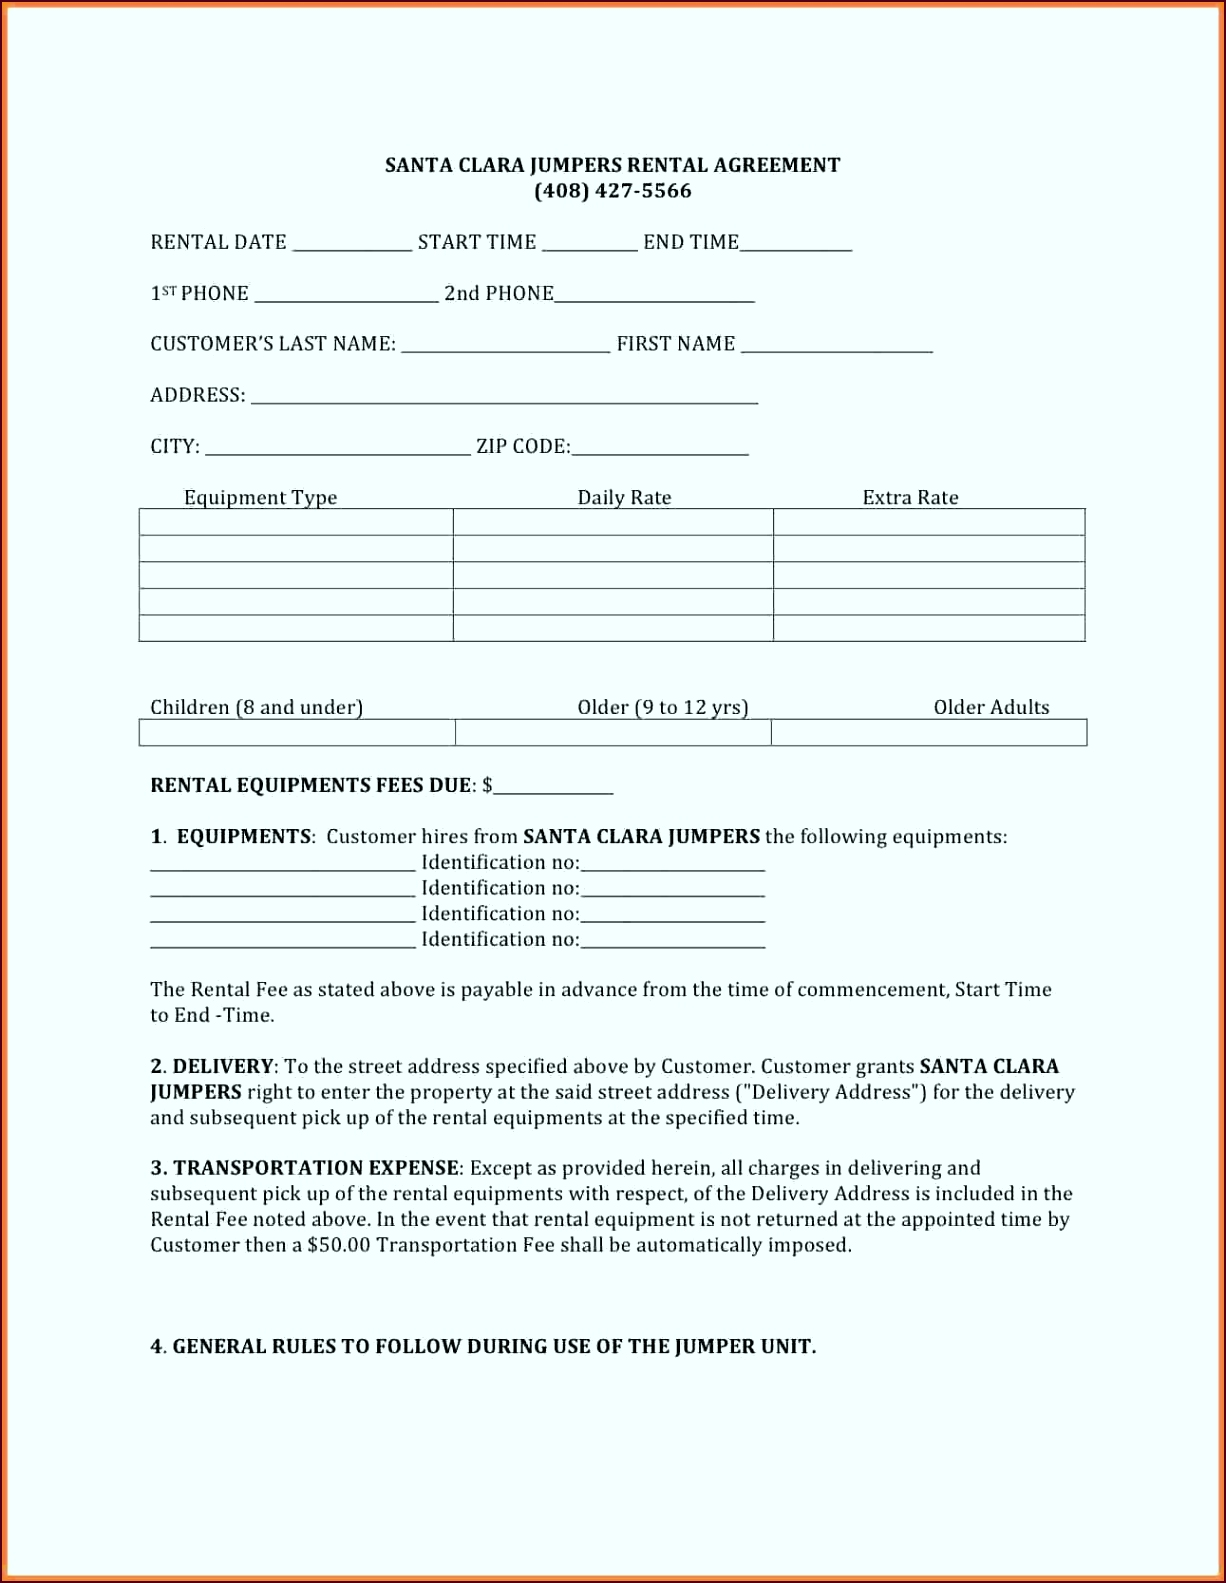 Room Rental form Template Along with Roommate Rental Agreement form Beautiful Roomental Agreement uoifo